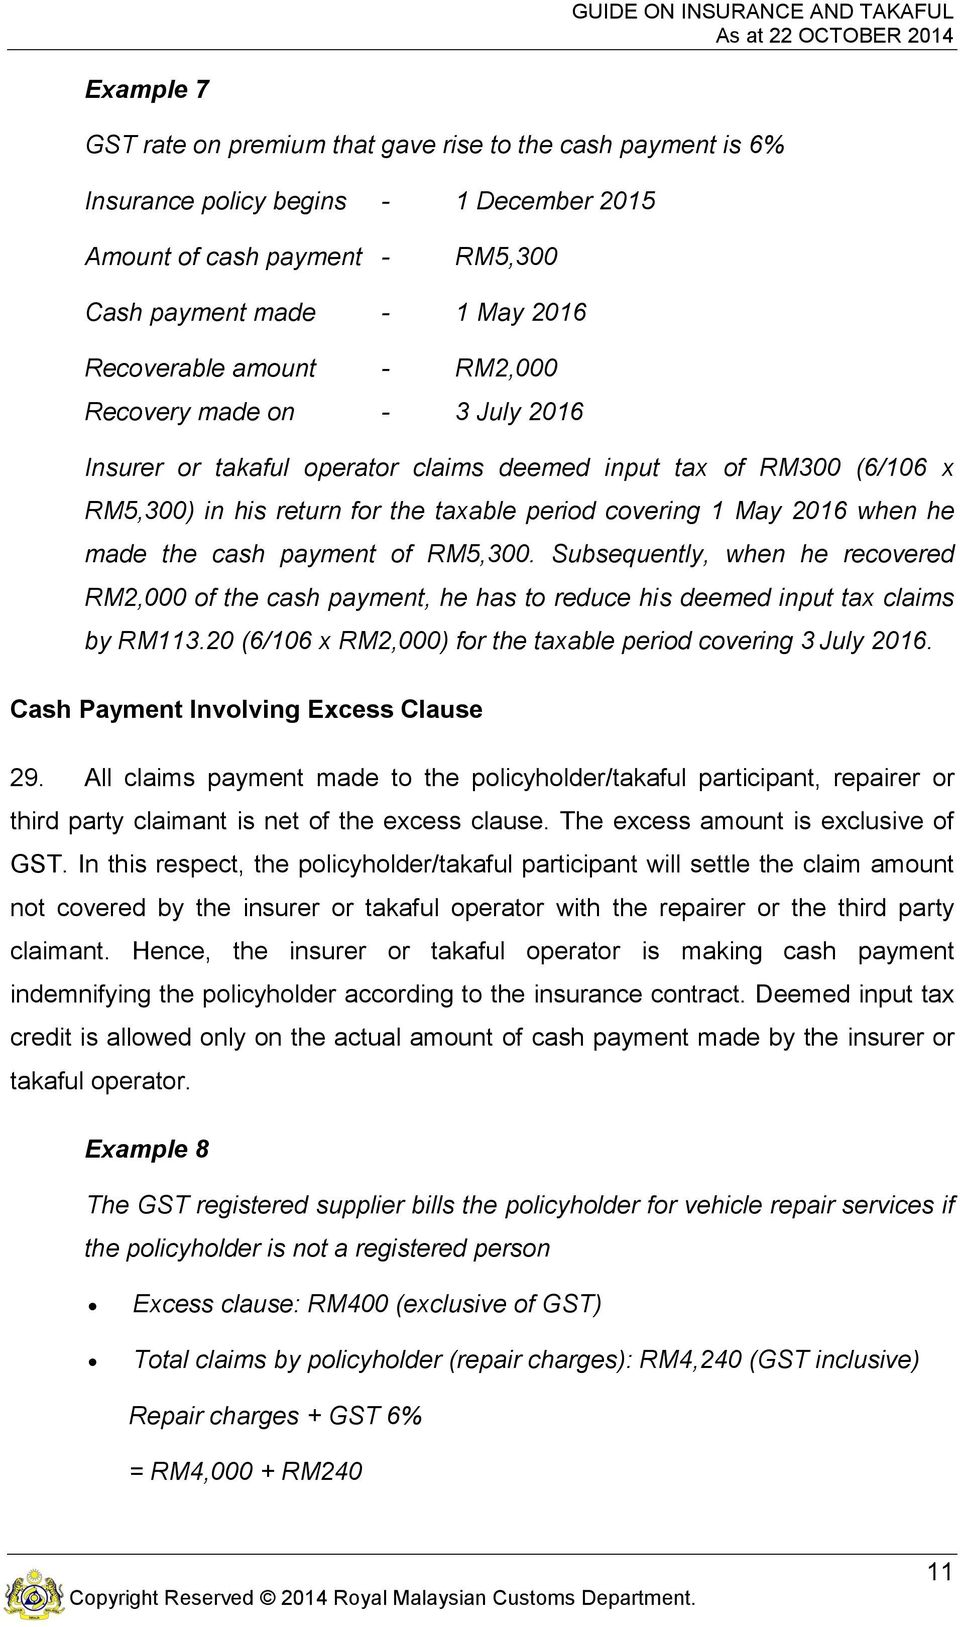 payment of RM5,300. Subsequently, when he recovered RM2,000 of the cash payment, he has to reduce his deemed input tax claims by RM113.20 (6/106 x RM2,000) for the taxable period covering 3 July 2016.